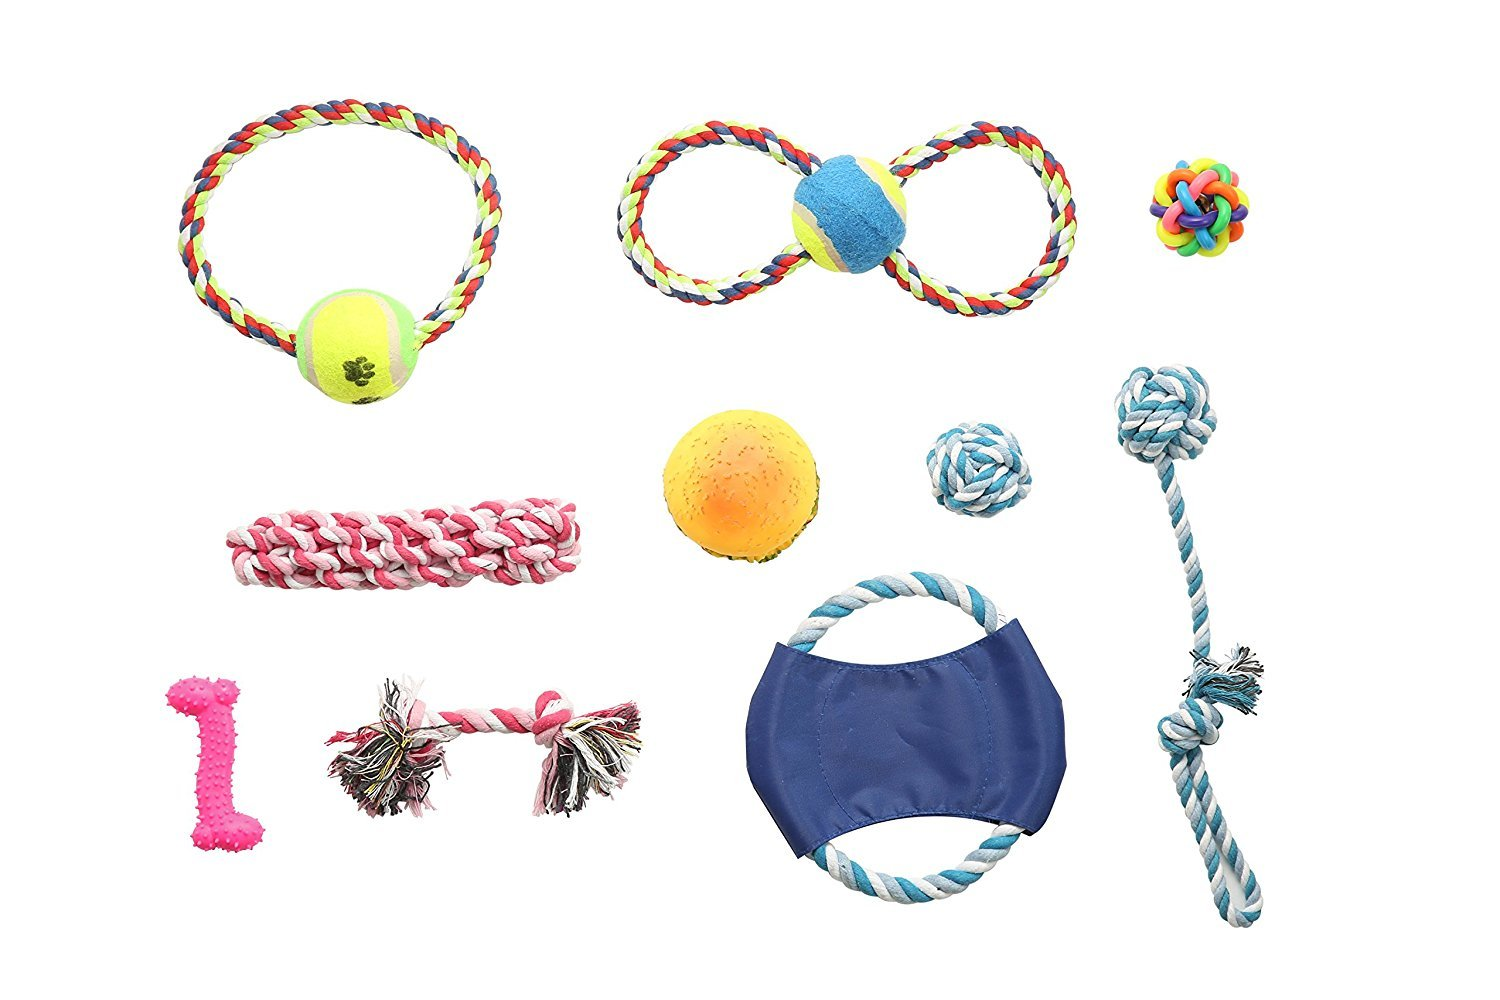 TuTu Pets Dog Toys Jumbo Set of 11 Pcs Durable Doggie Toys (Toy Balls Chew Toys Flying Discs Toy Ropes Squeak Toys Dogs Accessories Interactive Dog Toys for Clean Teeth for Fun and for Training)